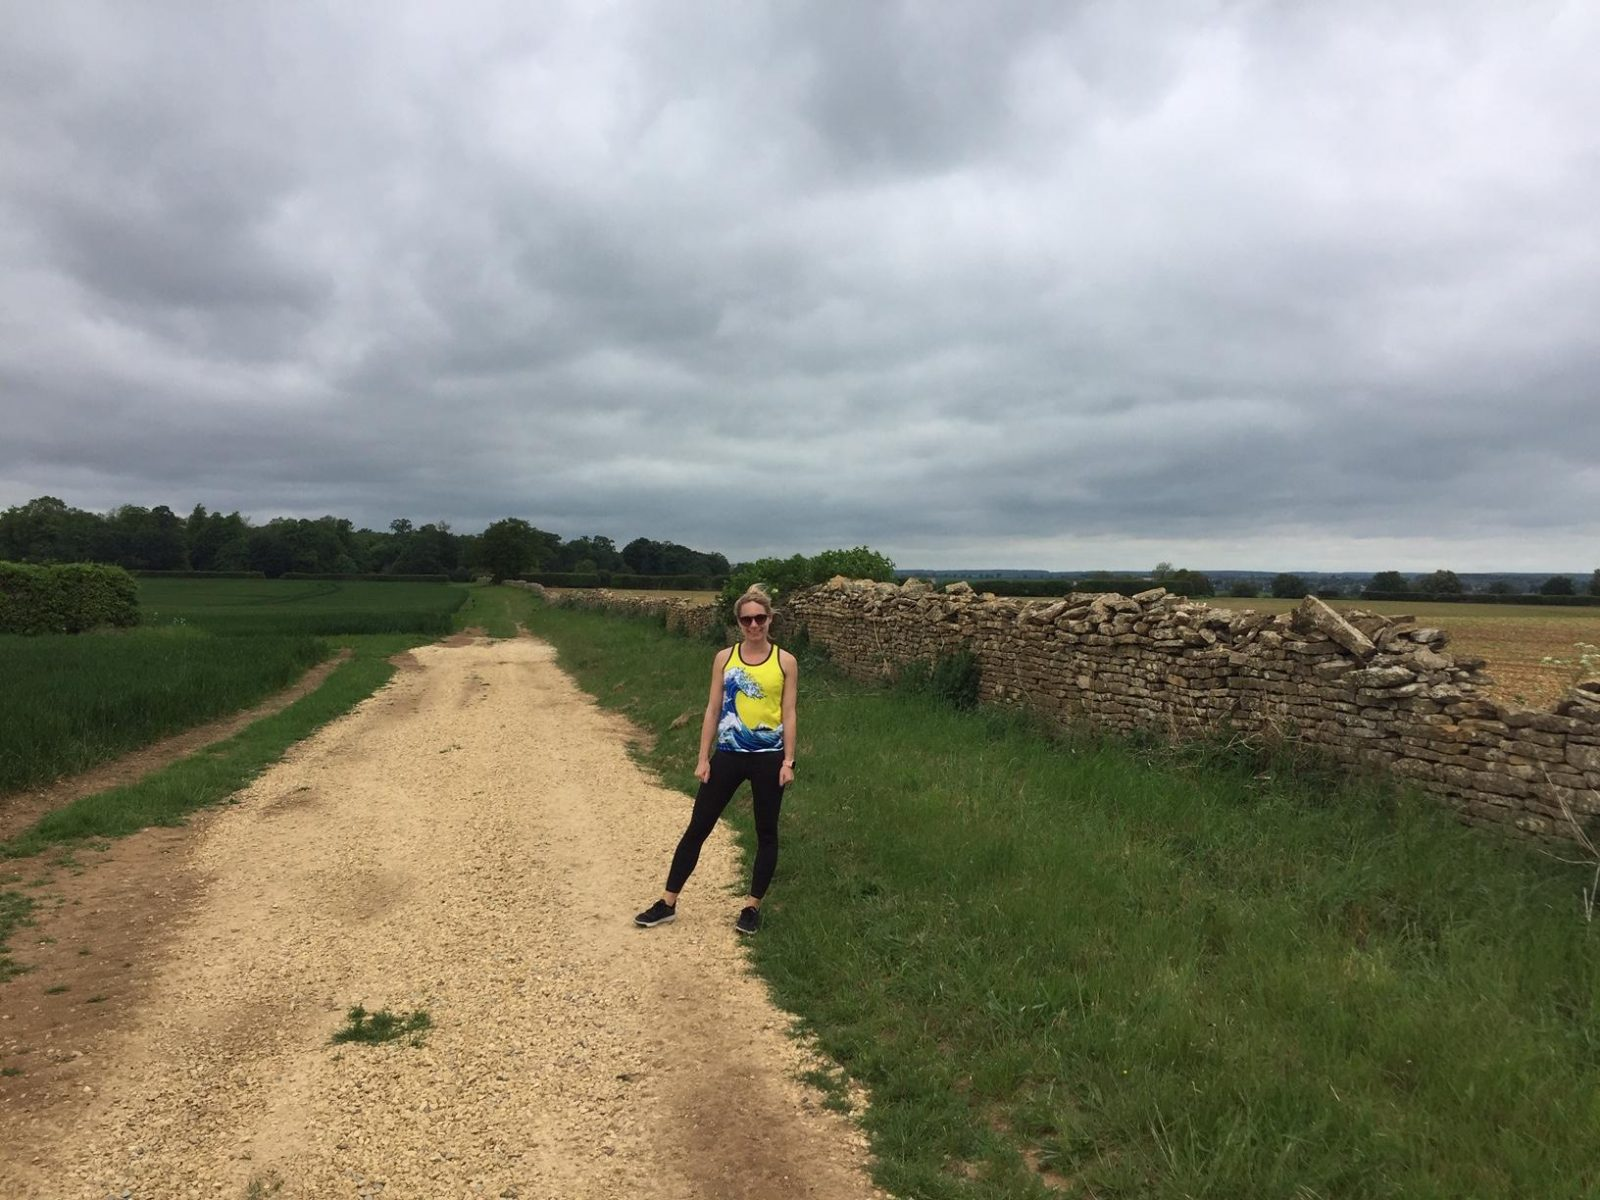 Running in the countryside